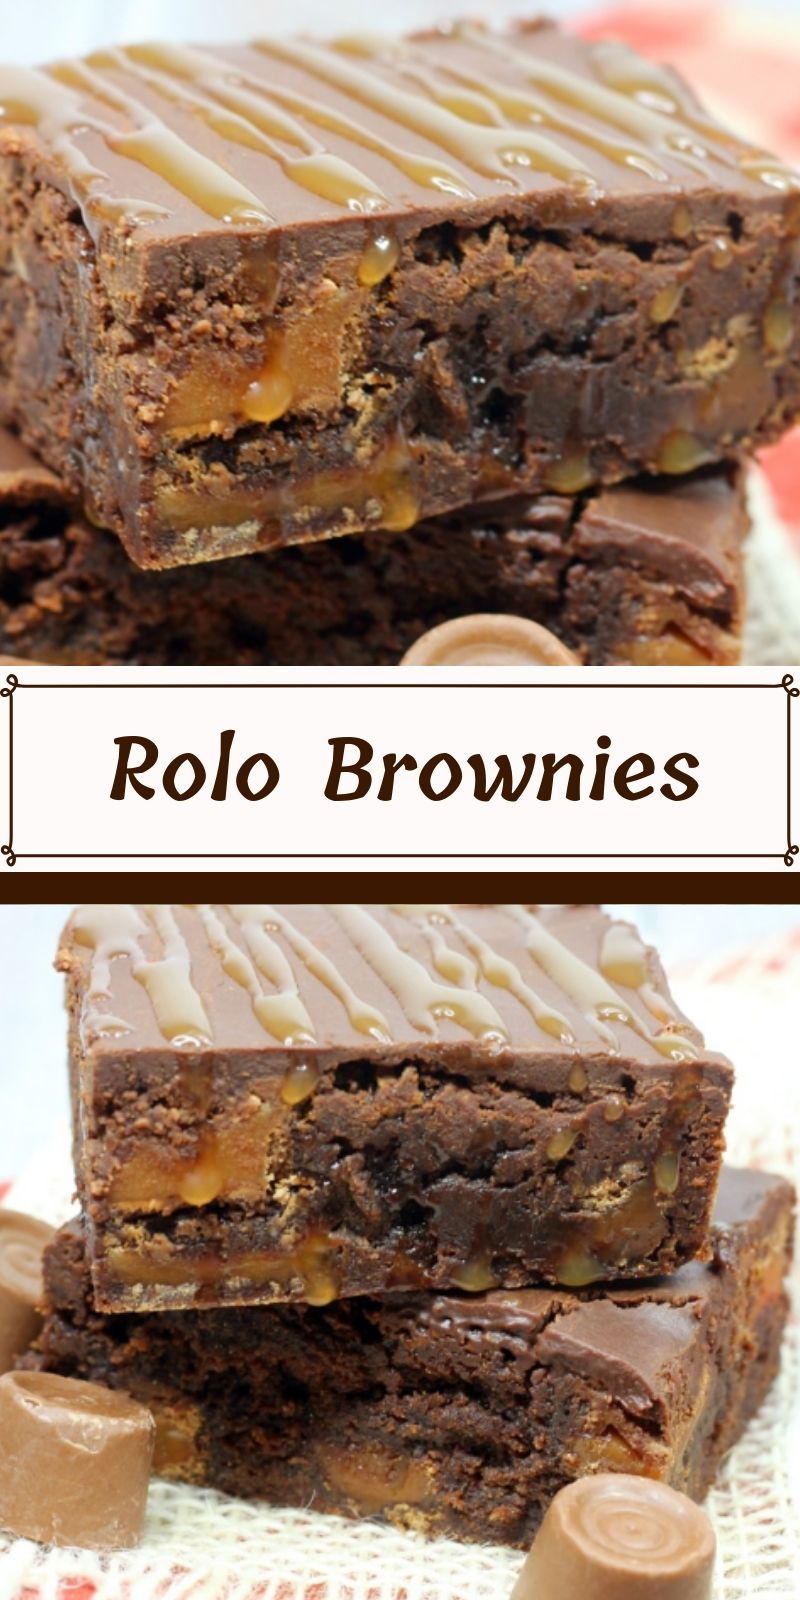 https://kitchenfunwithmy3sons.com/rolo-brownies/